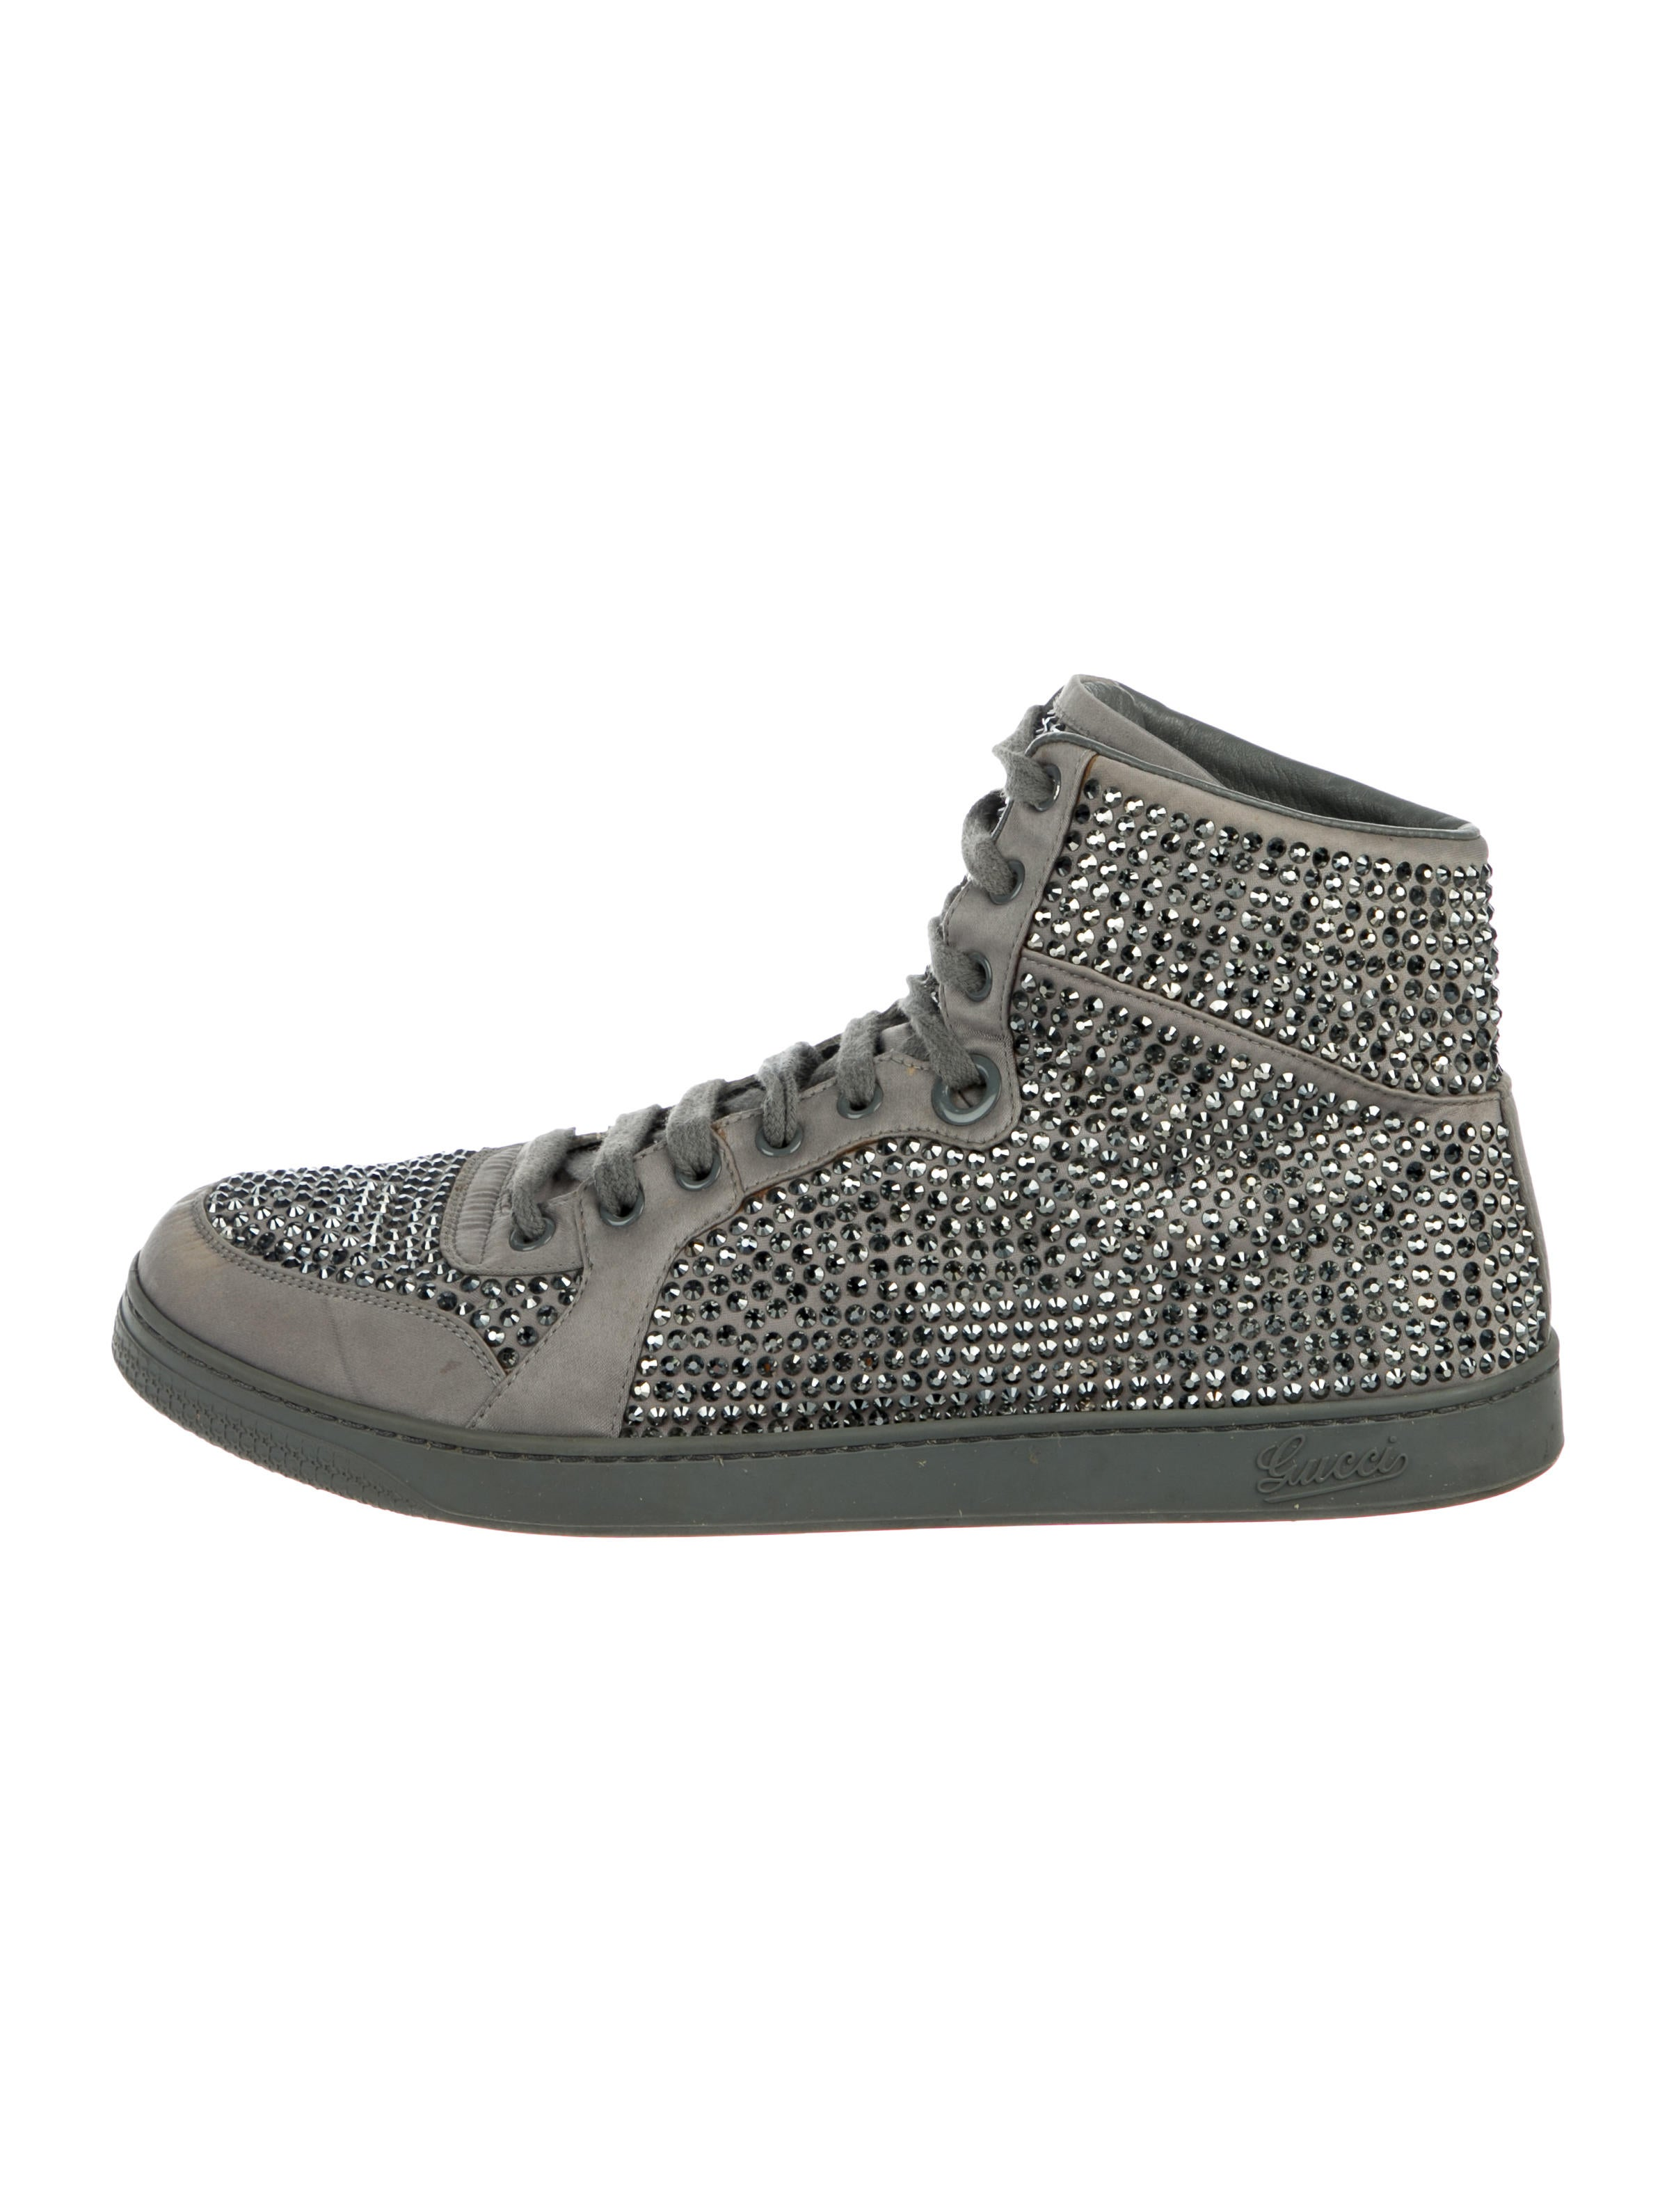 3f1f5f0880a Gucci Coda Crystal Embellished Sneakers - Shoes - GUC249474